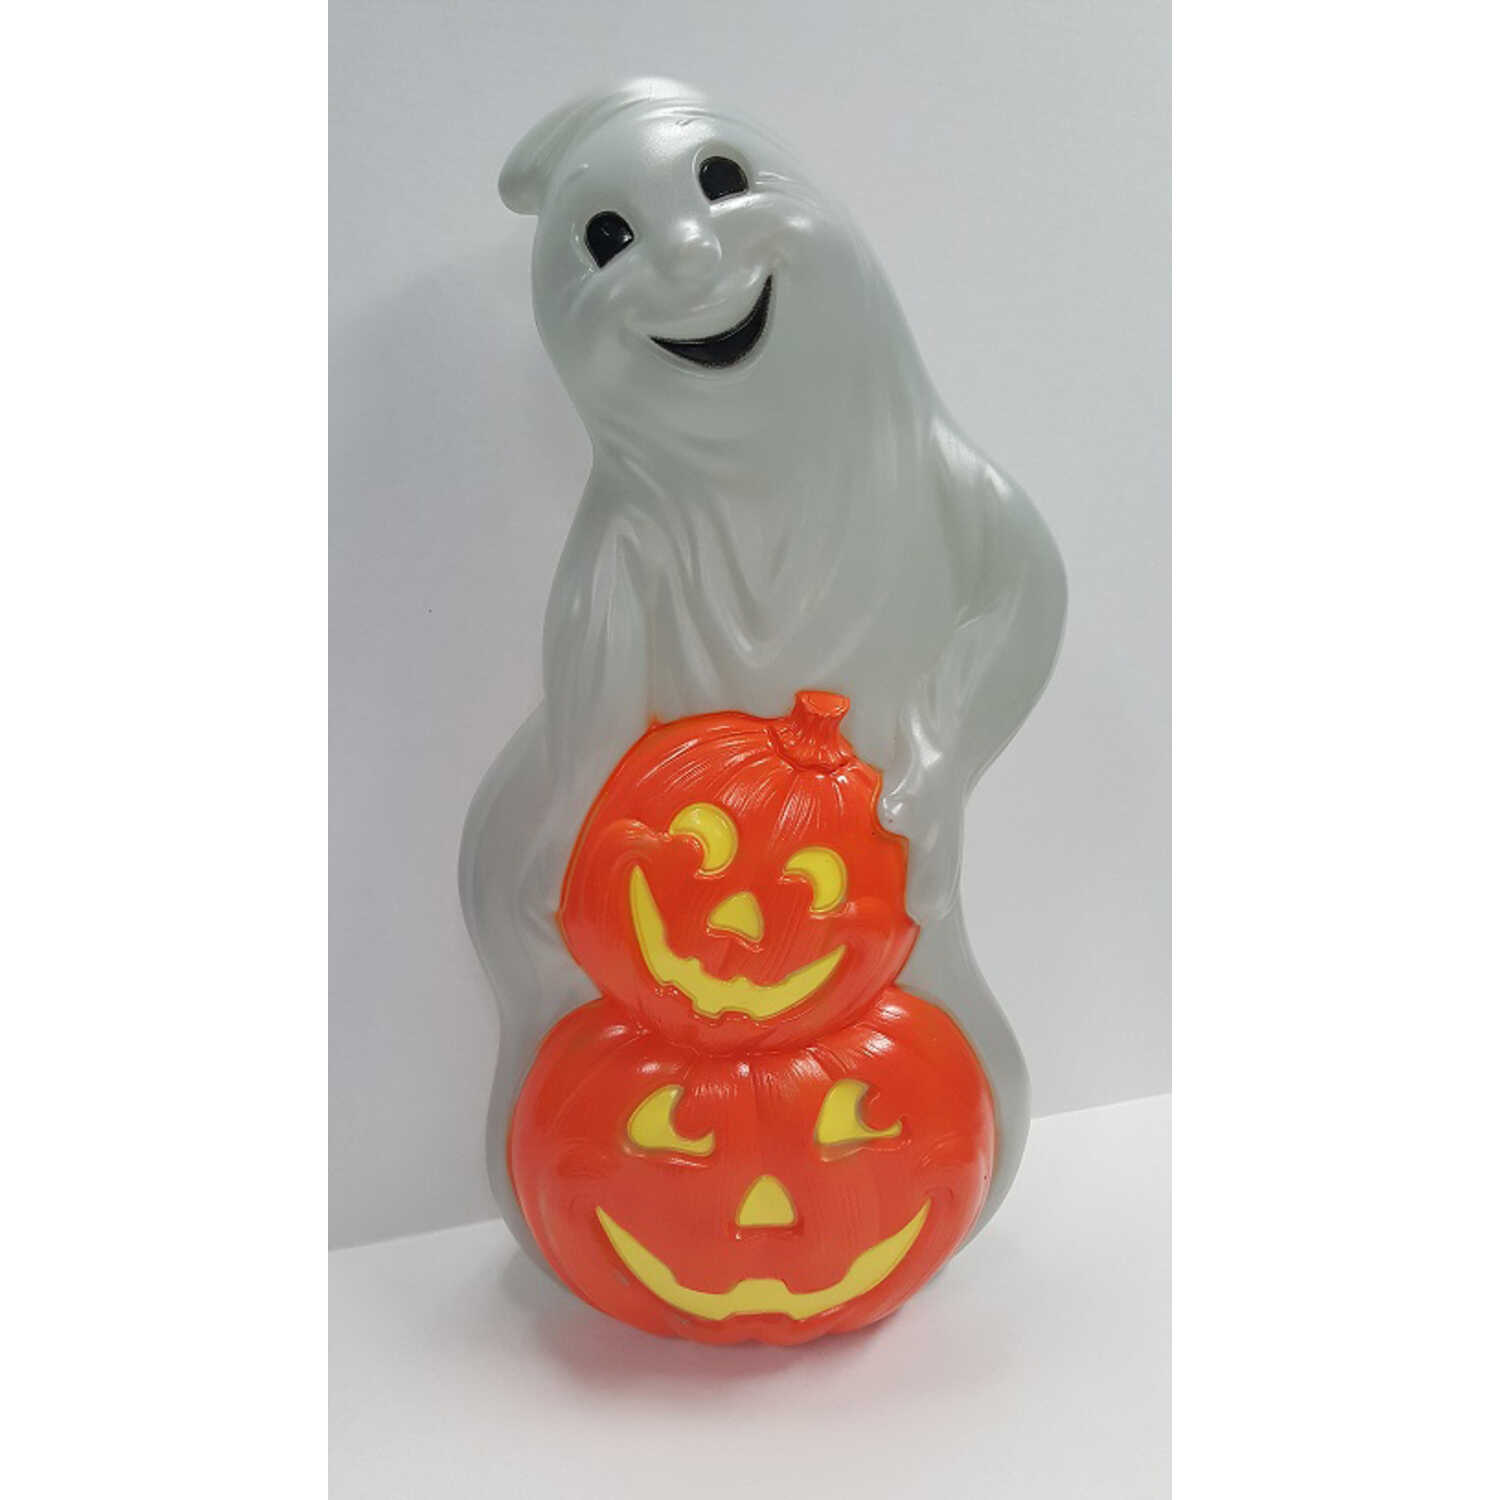 Union Products  Blow Mold Ghost  Lighted Orange/White  Halloween Decoration  31 in. H x 15.5 in. W x